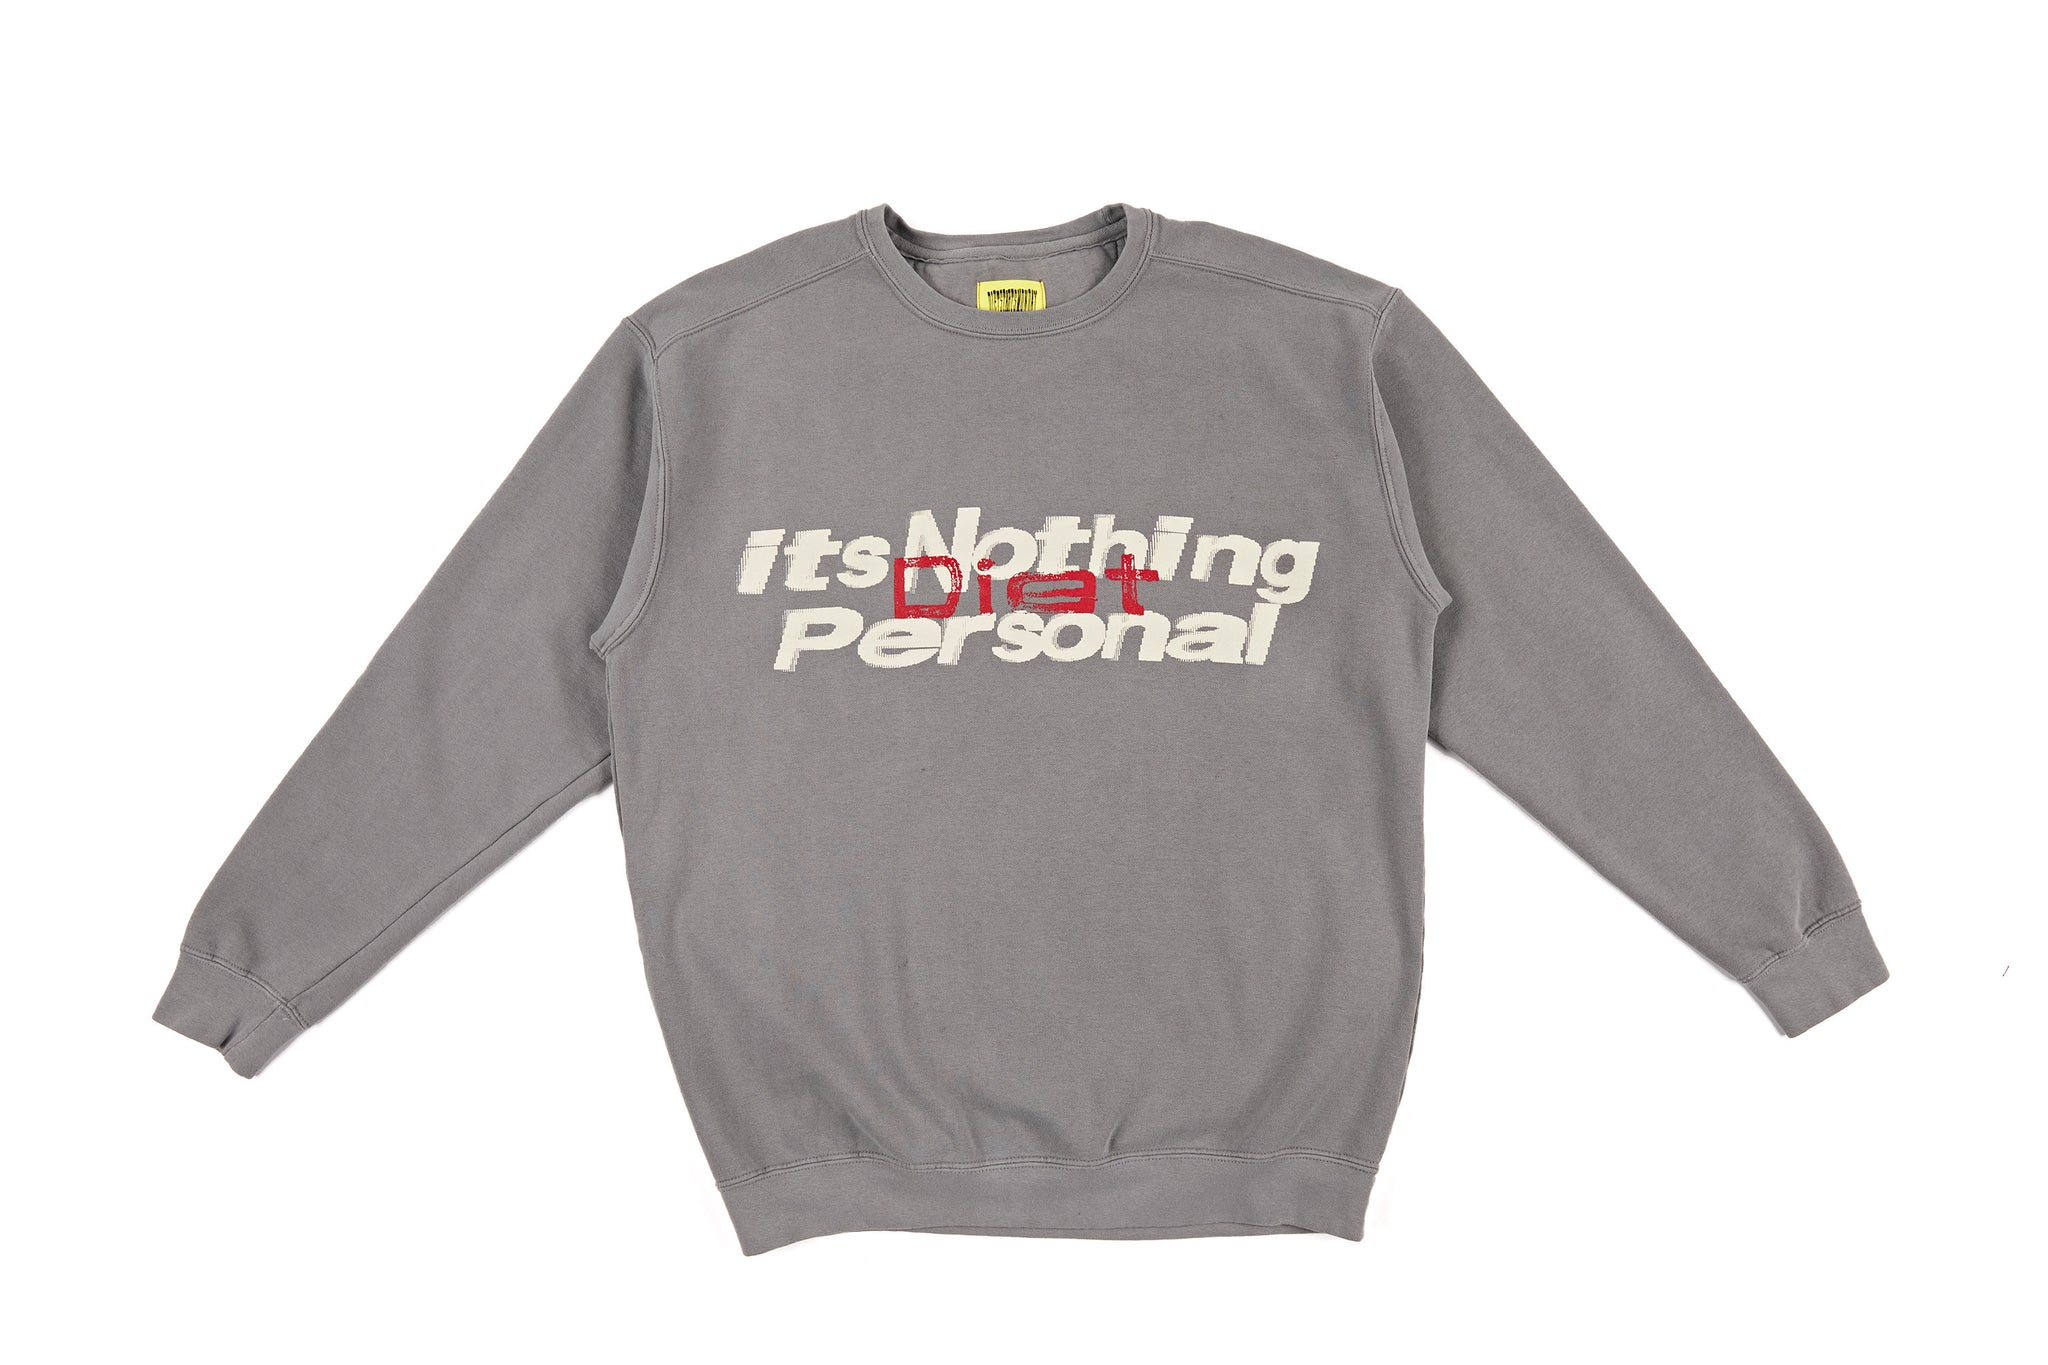 Nothing Personal Crewneck Sweatshirt